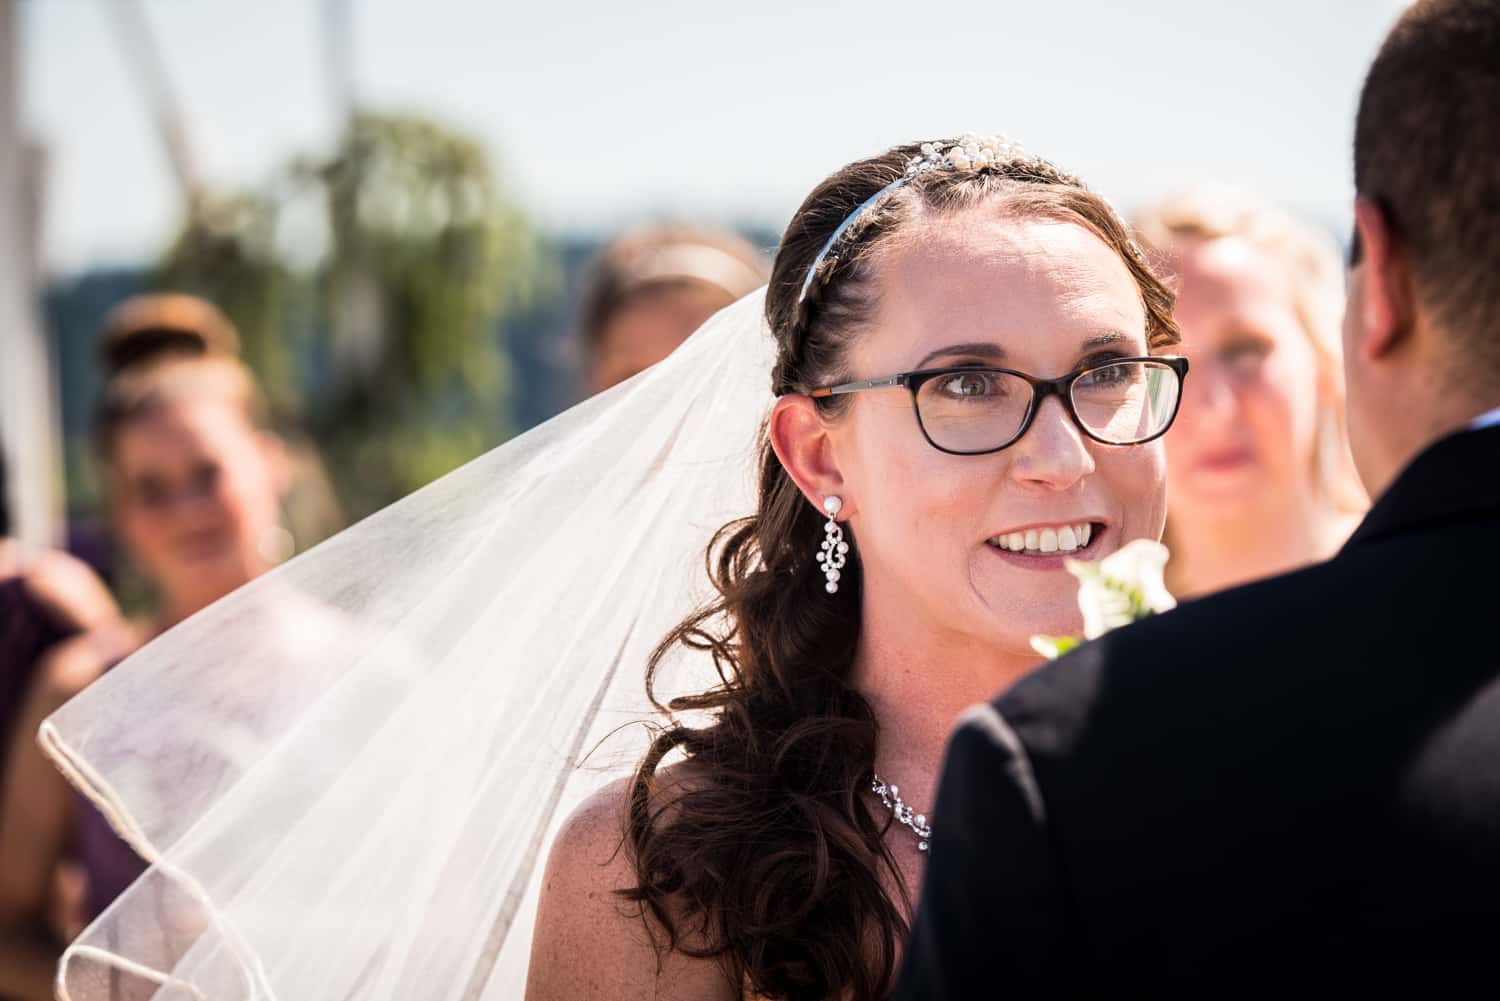 Bride wearing black glasses and a veil looking at her groom during the ceremony.